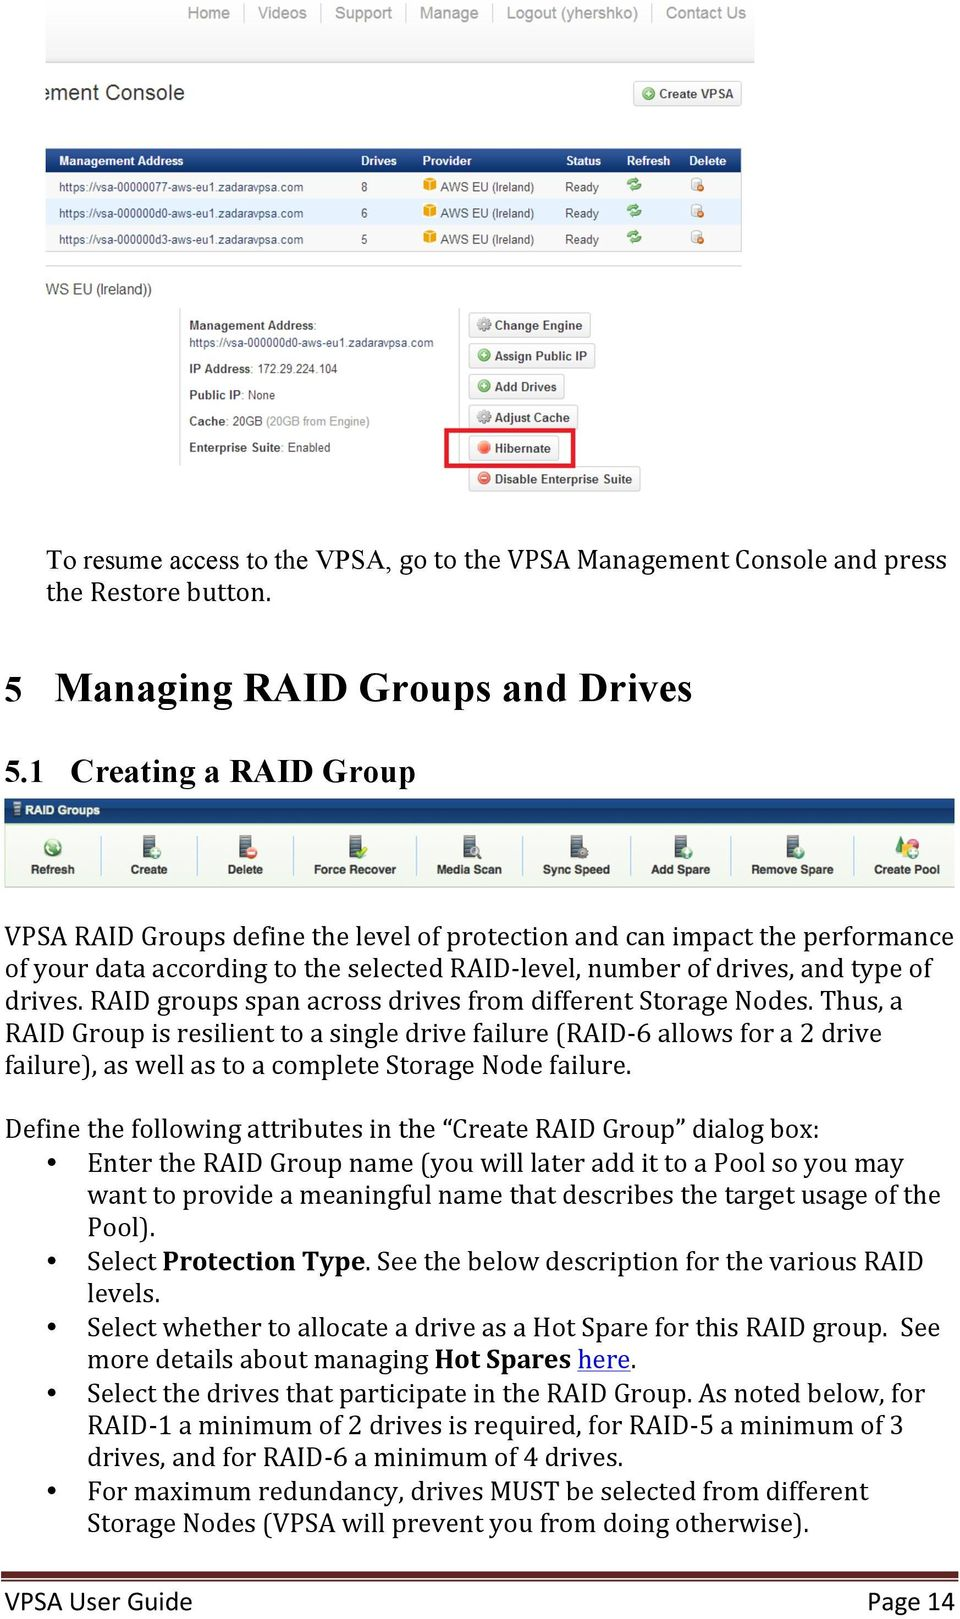 RAID groups span across drives from different Storage Nodes.